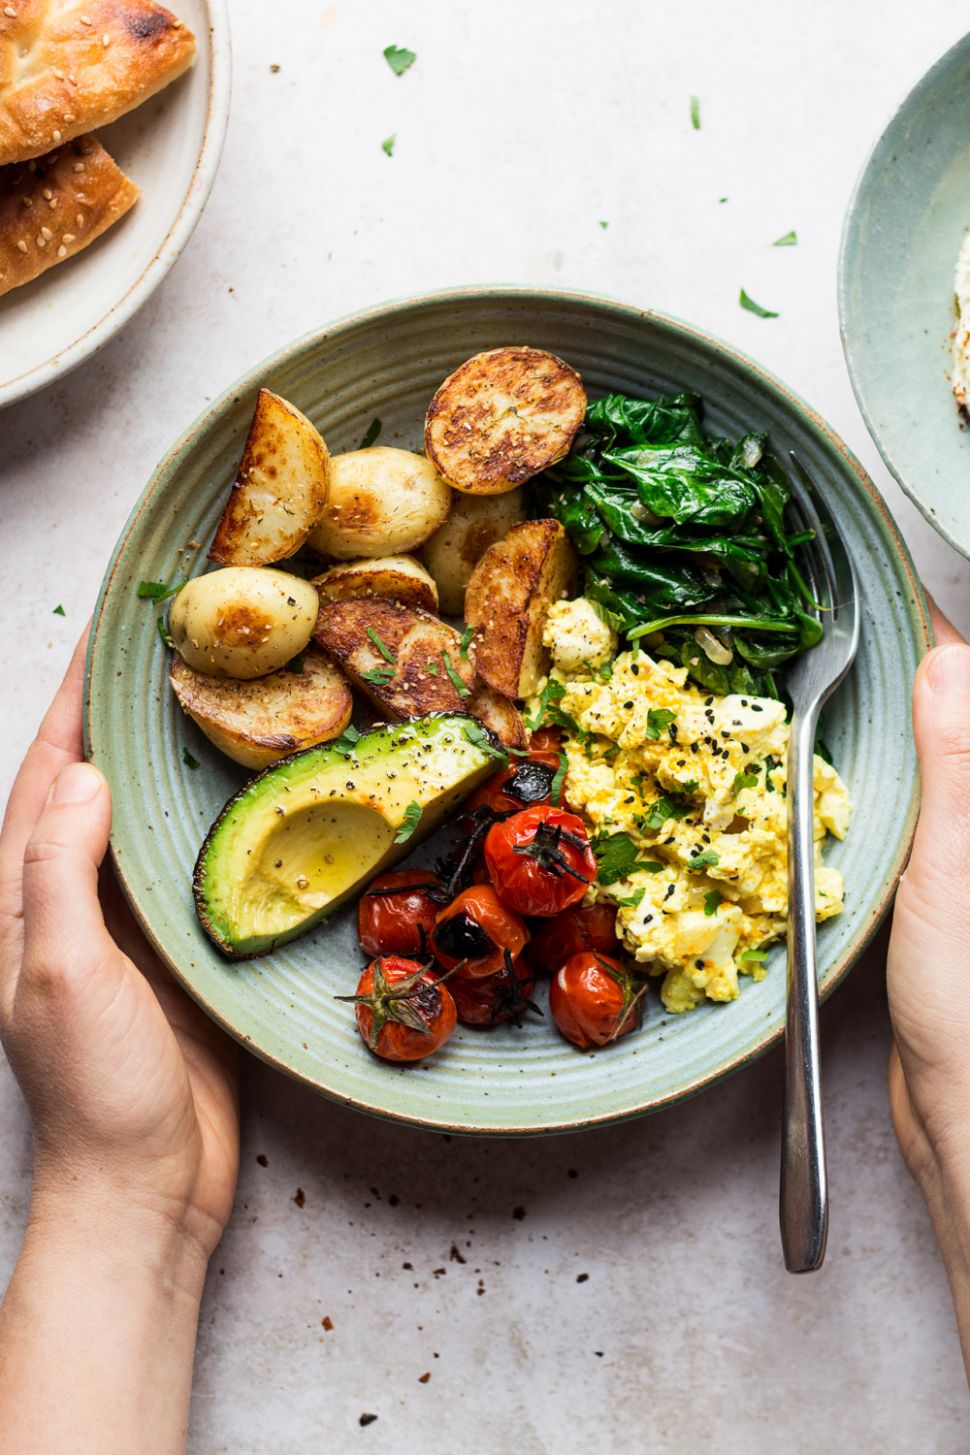 Savoury vegan breakfast bowl - Breakfast Recipes Vegetarian